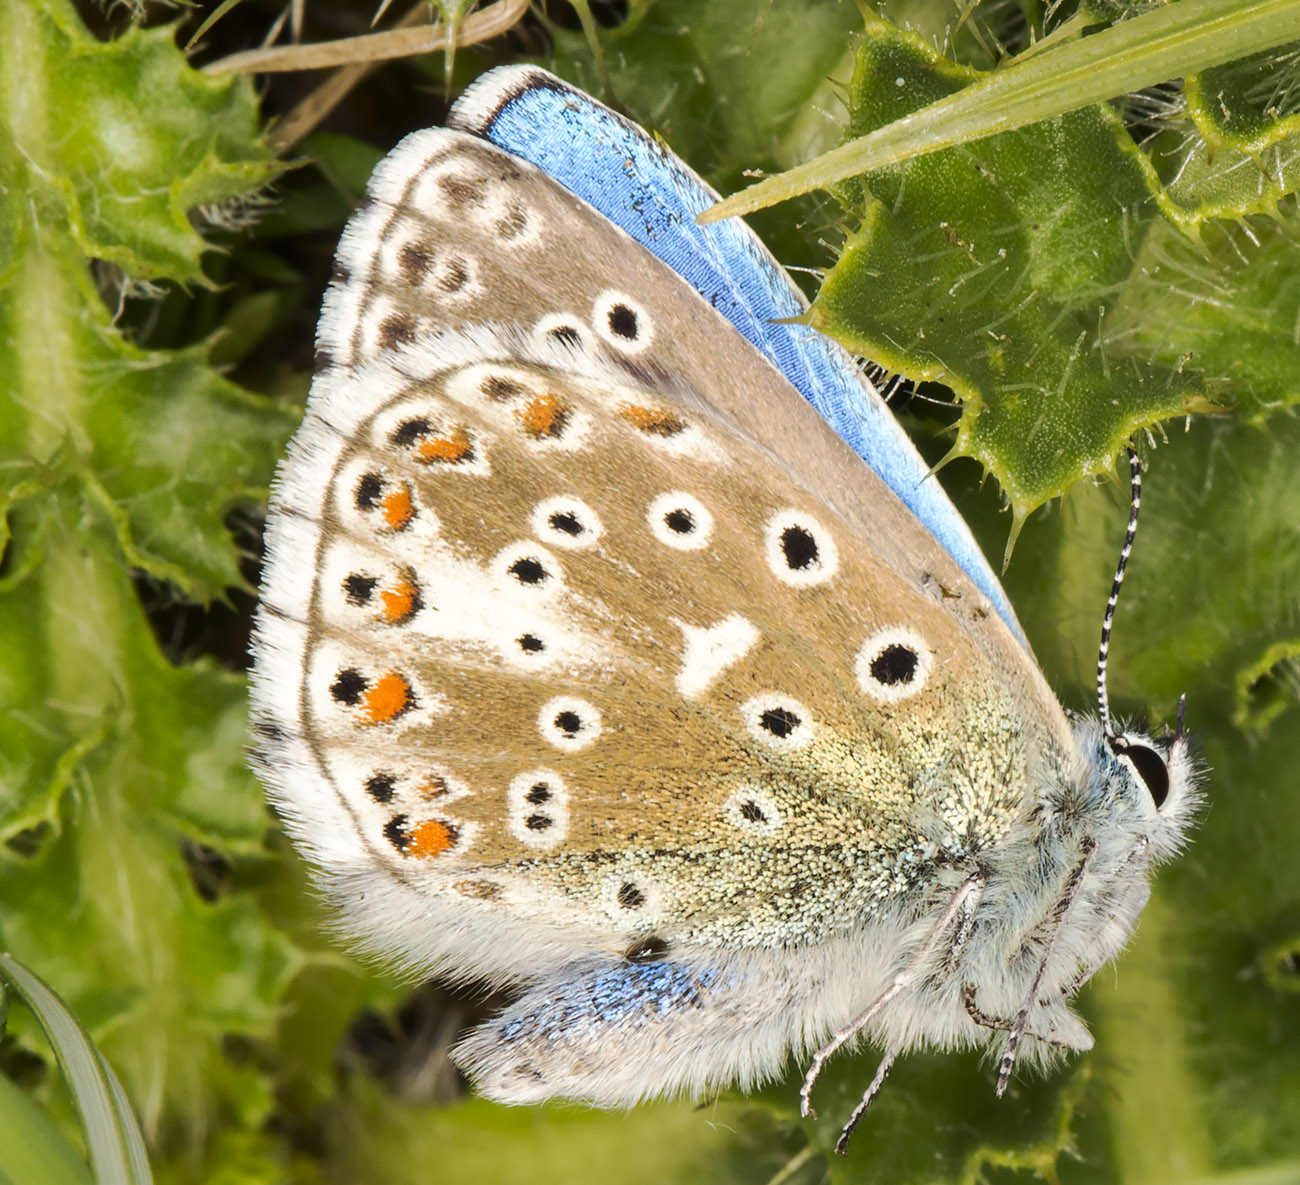 Adonis Blue, Lysandra bellargus.  Queendown Warren with the Orpington Field Club, 24 May 2014.